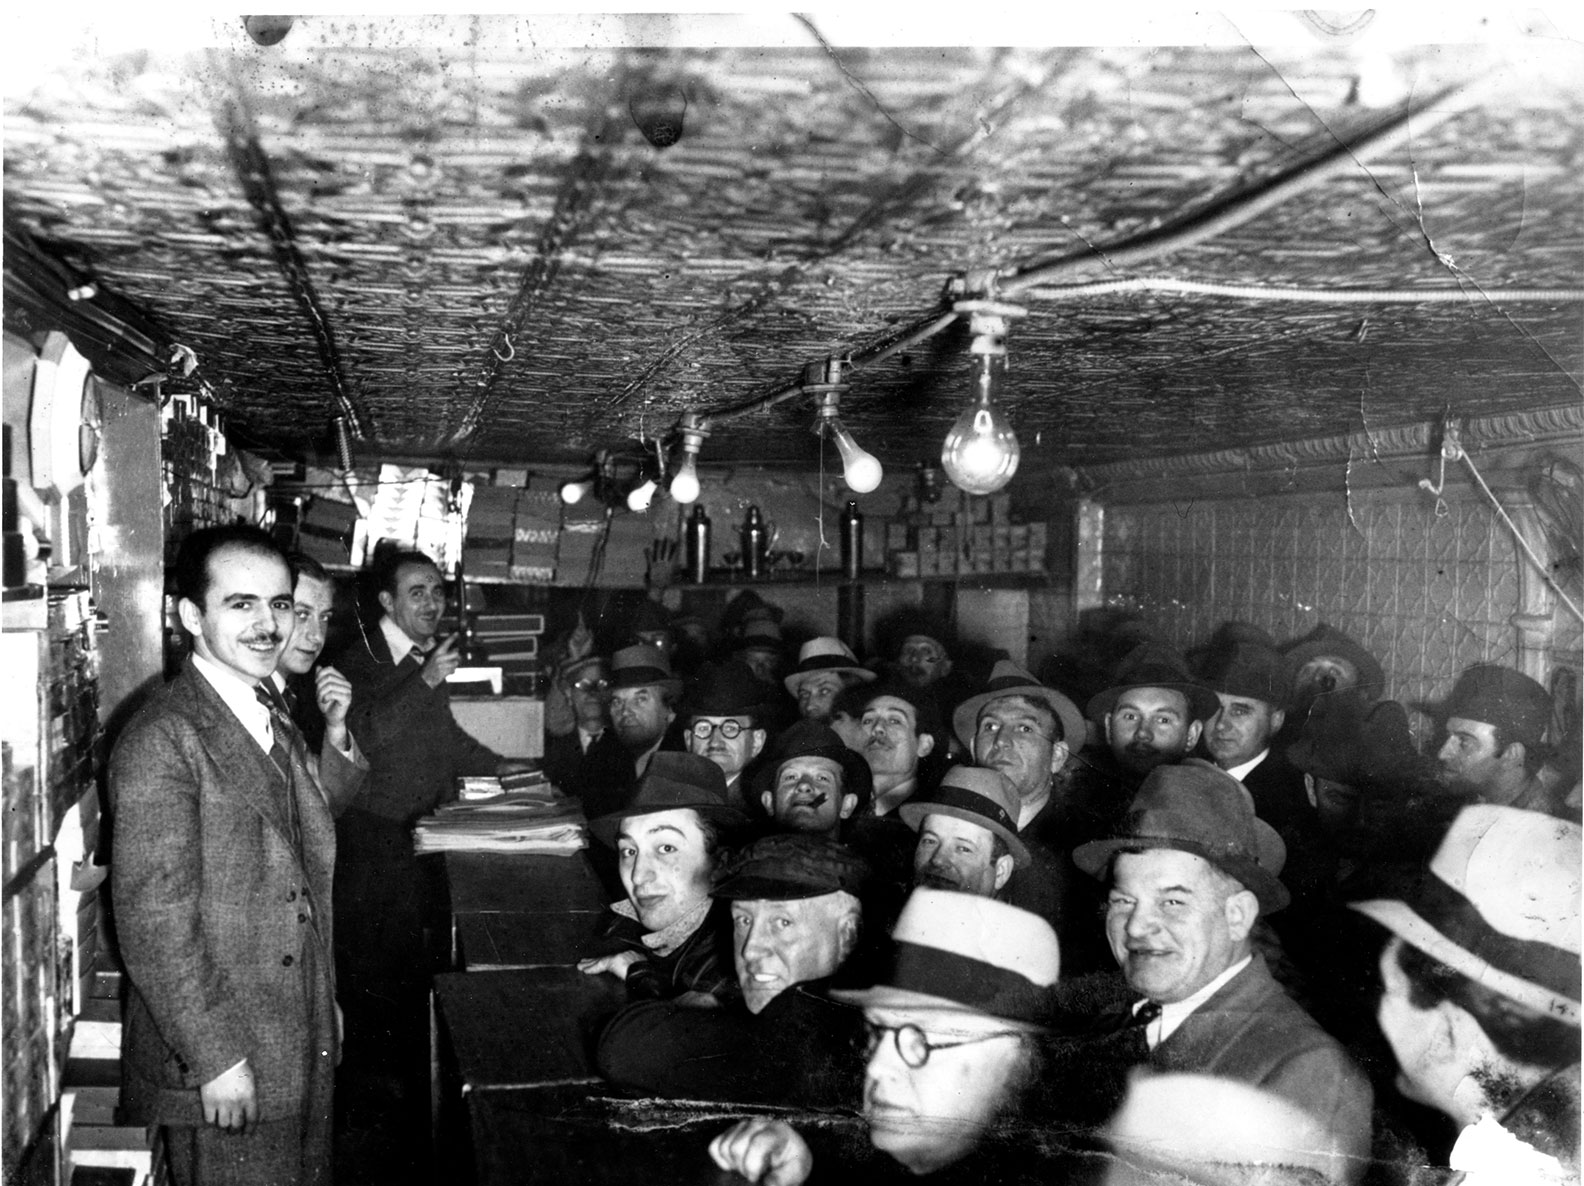 Photo of a group of men in an auction house once operated inside 97 Orchard Street